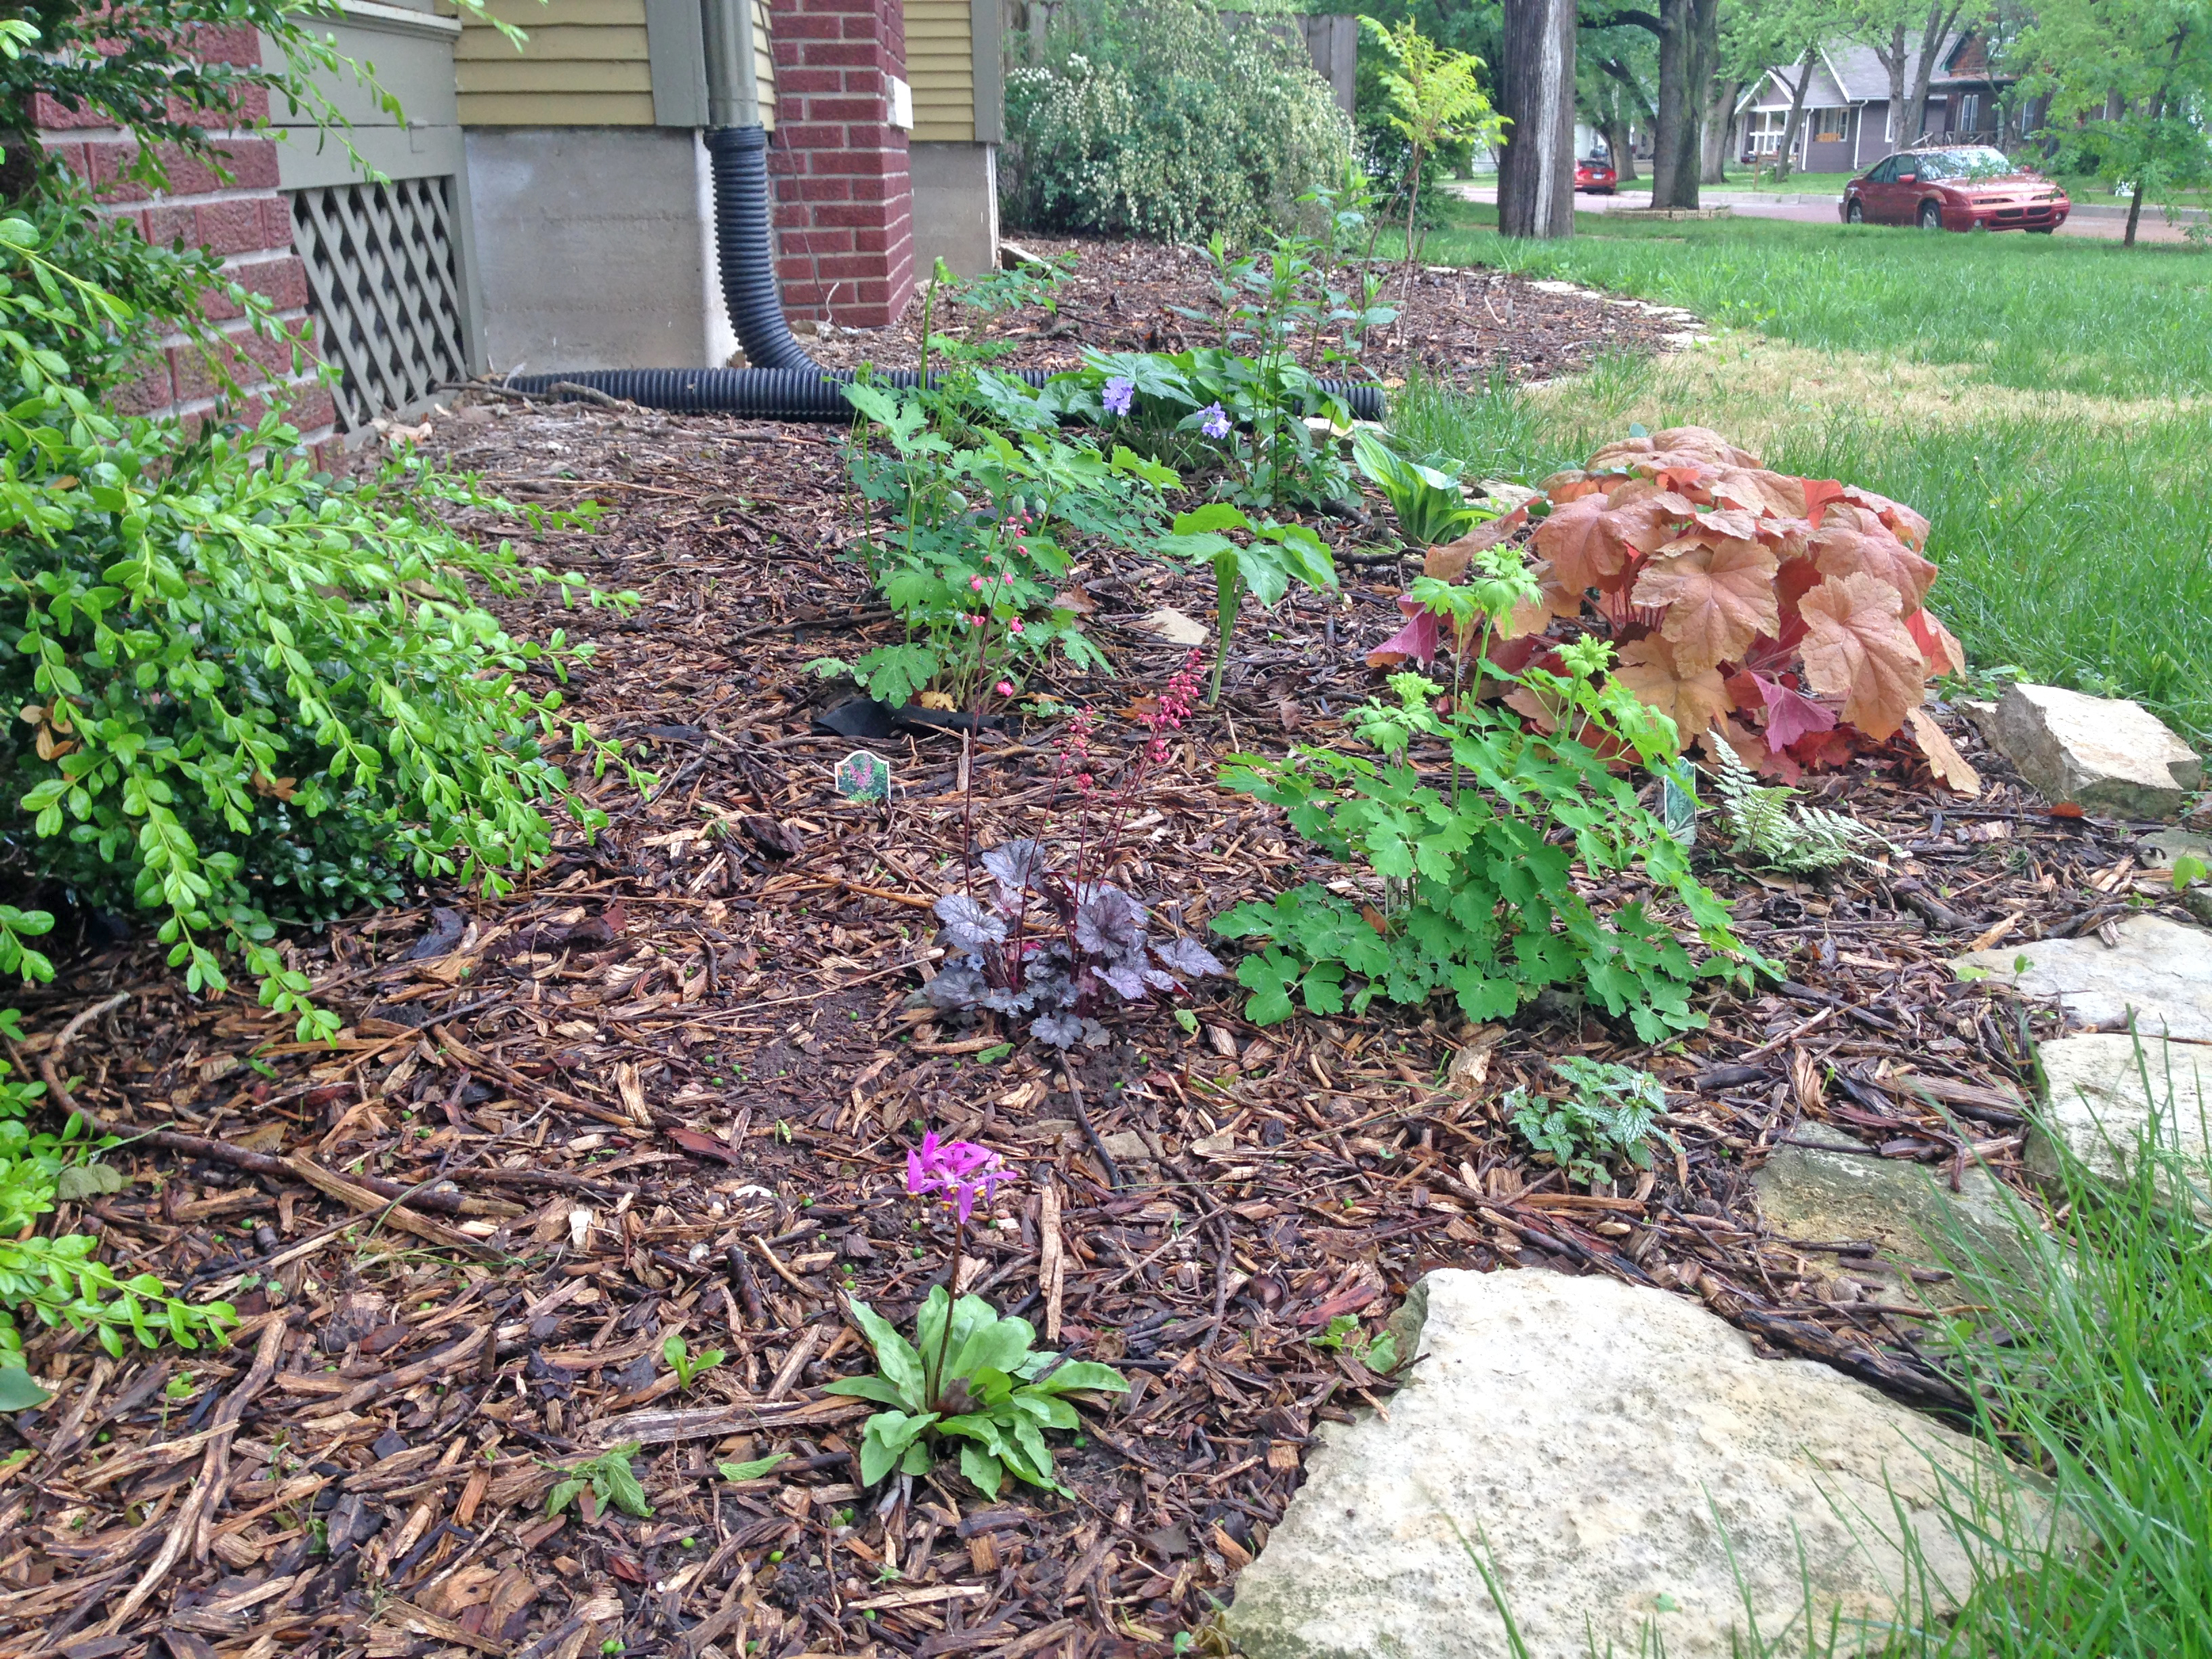 Landscaping With Native Plants : Landscaping with native plants one small step at a time dyck